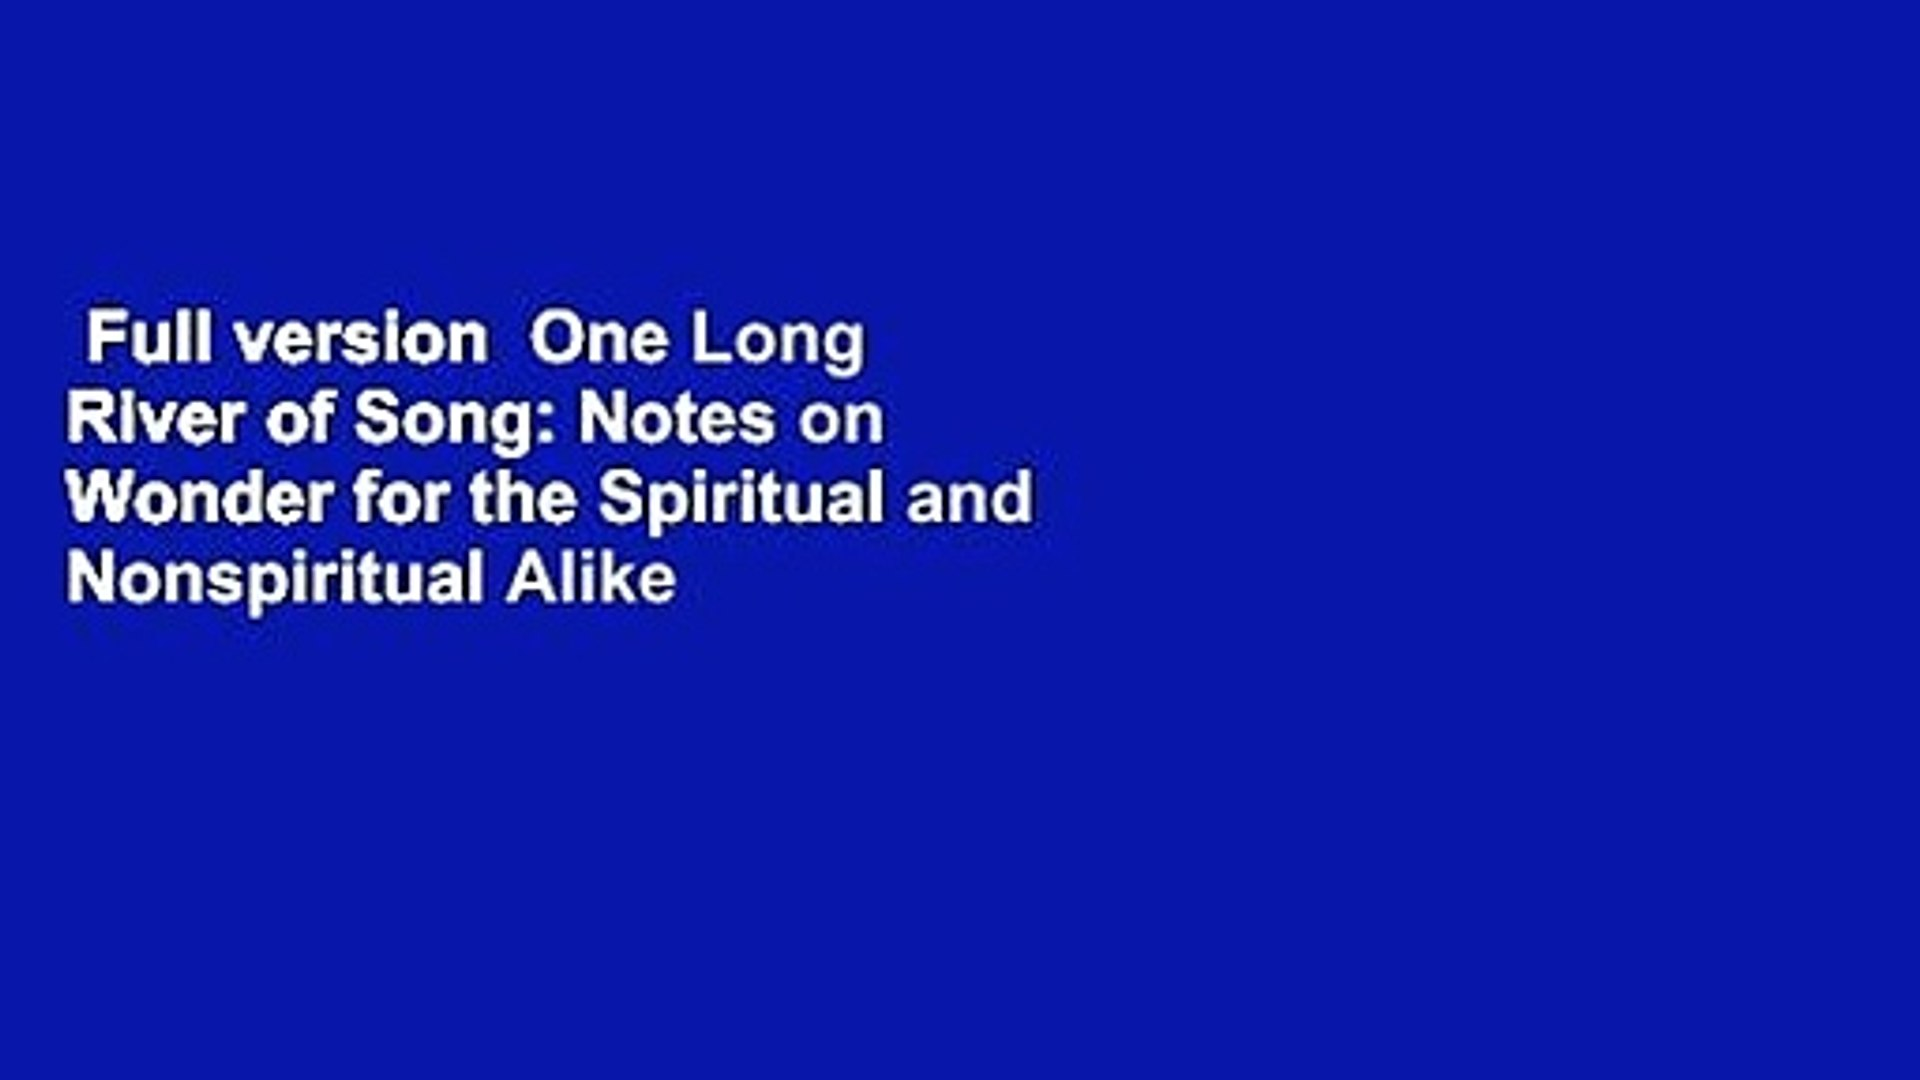 Full version  One Long River of Song: Notes on Wonder for the Spiritual and Nonspiritual Alike